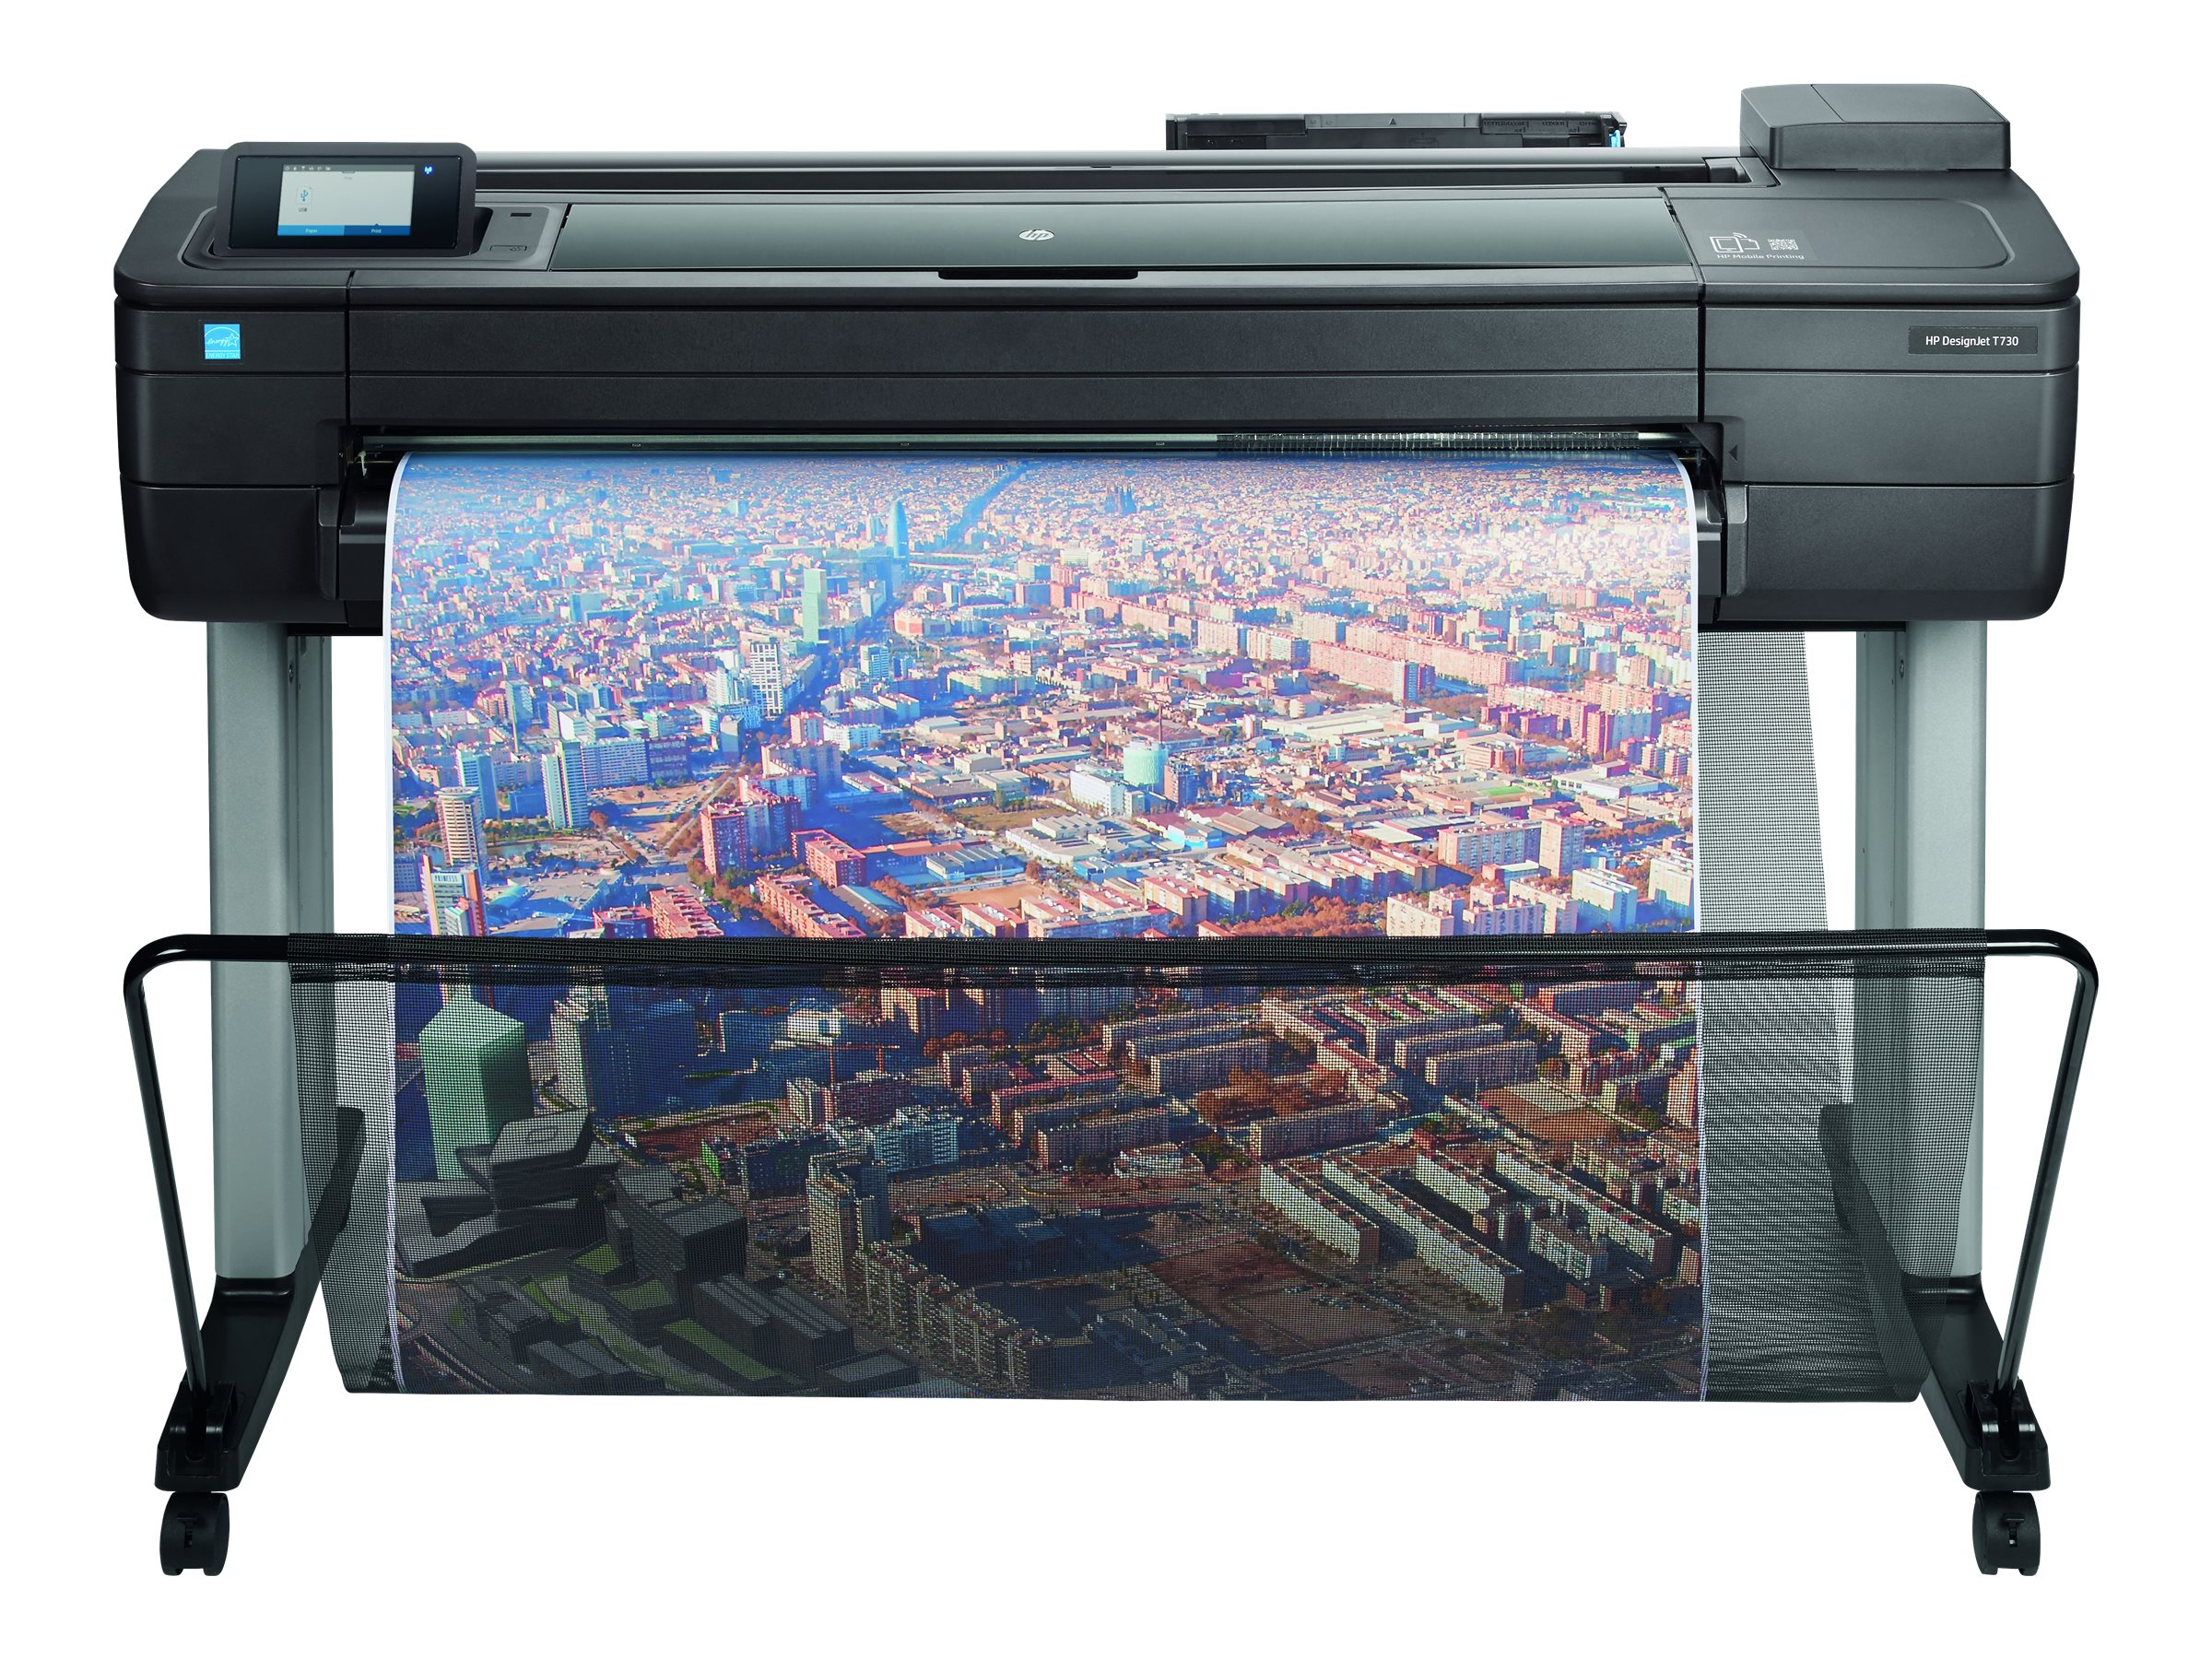 HP Designjet T730 36 Printer, F9A29A#BCB